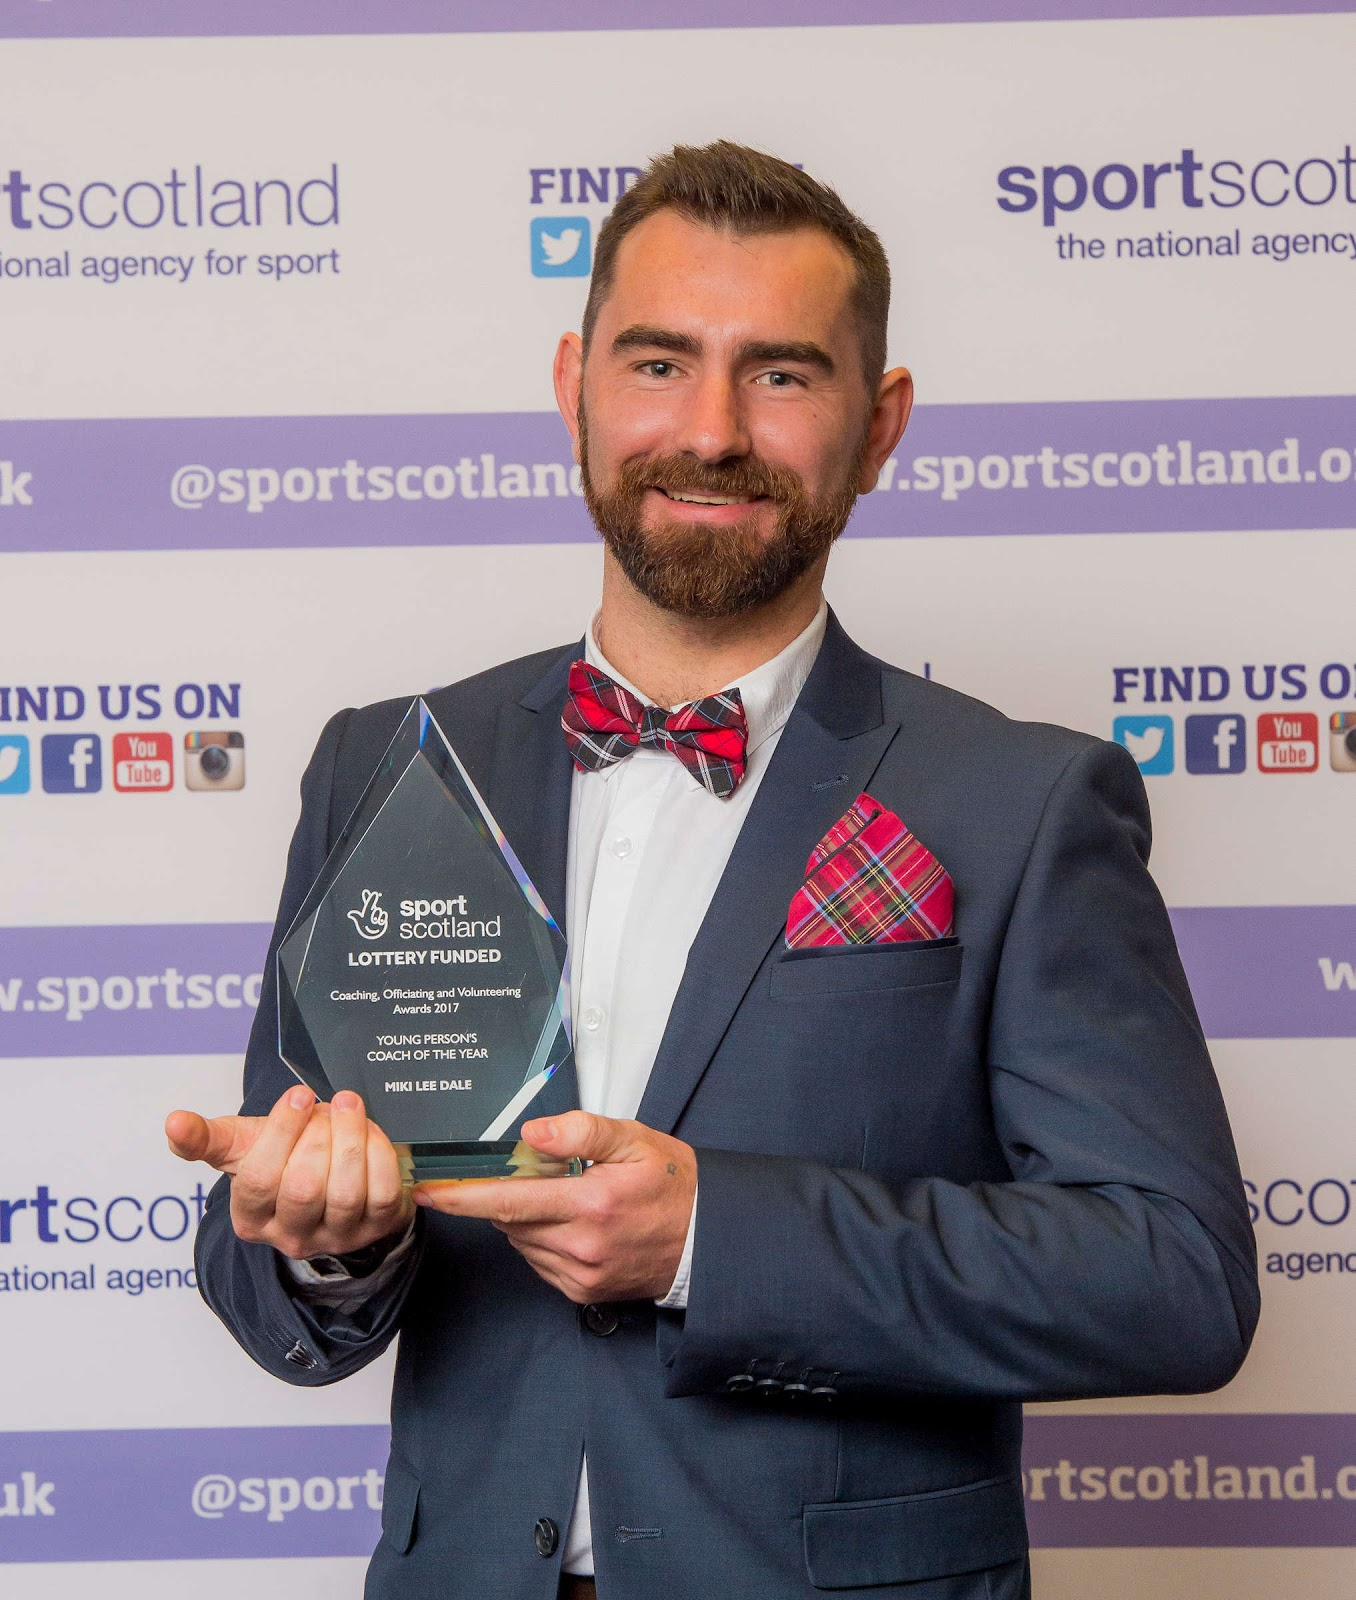 Miki Dale after receiving his Sports Council for Glasgow, Young Persons Coach of the Year Award.